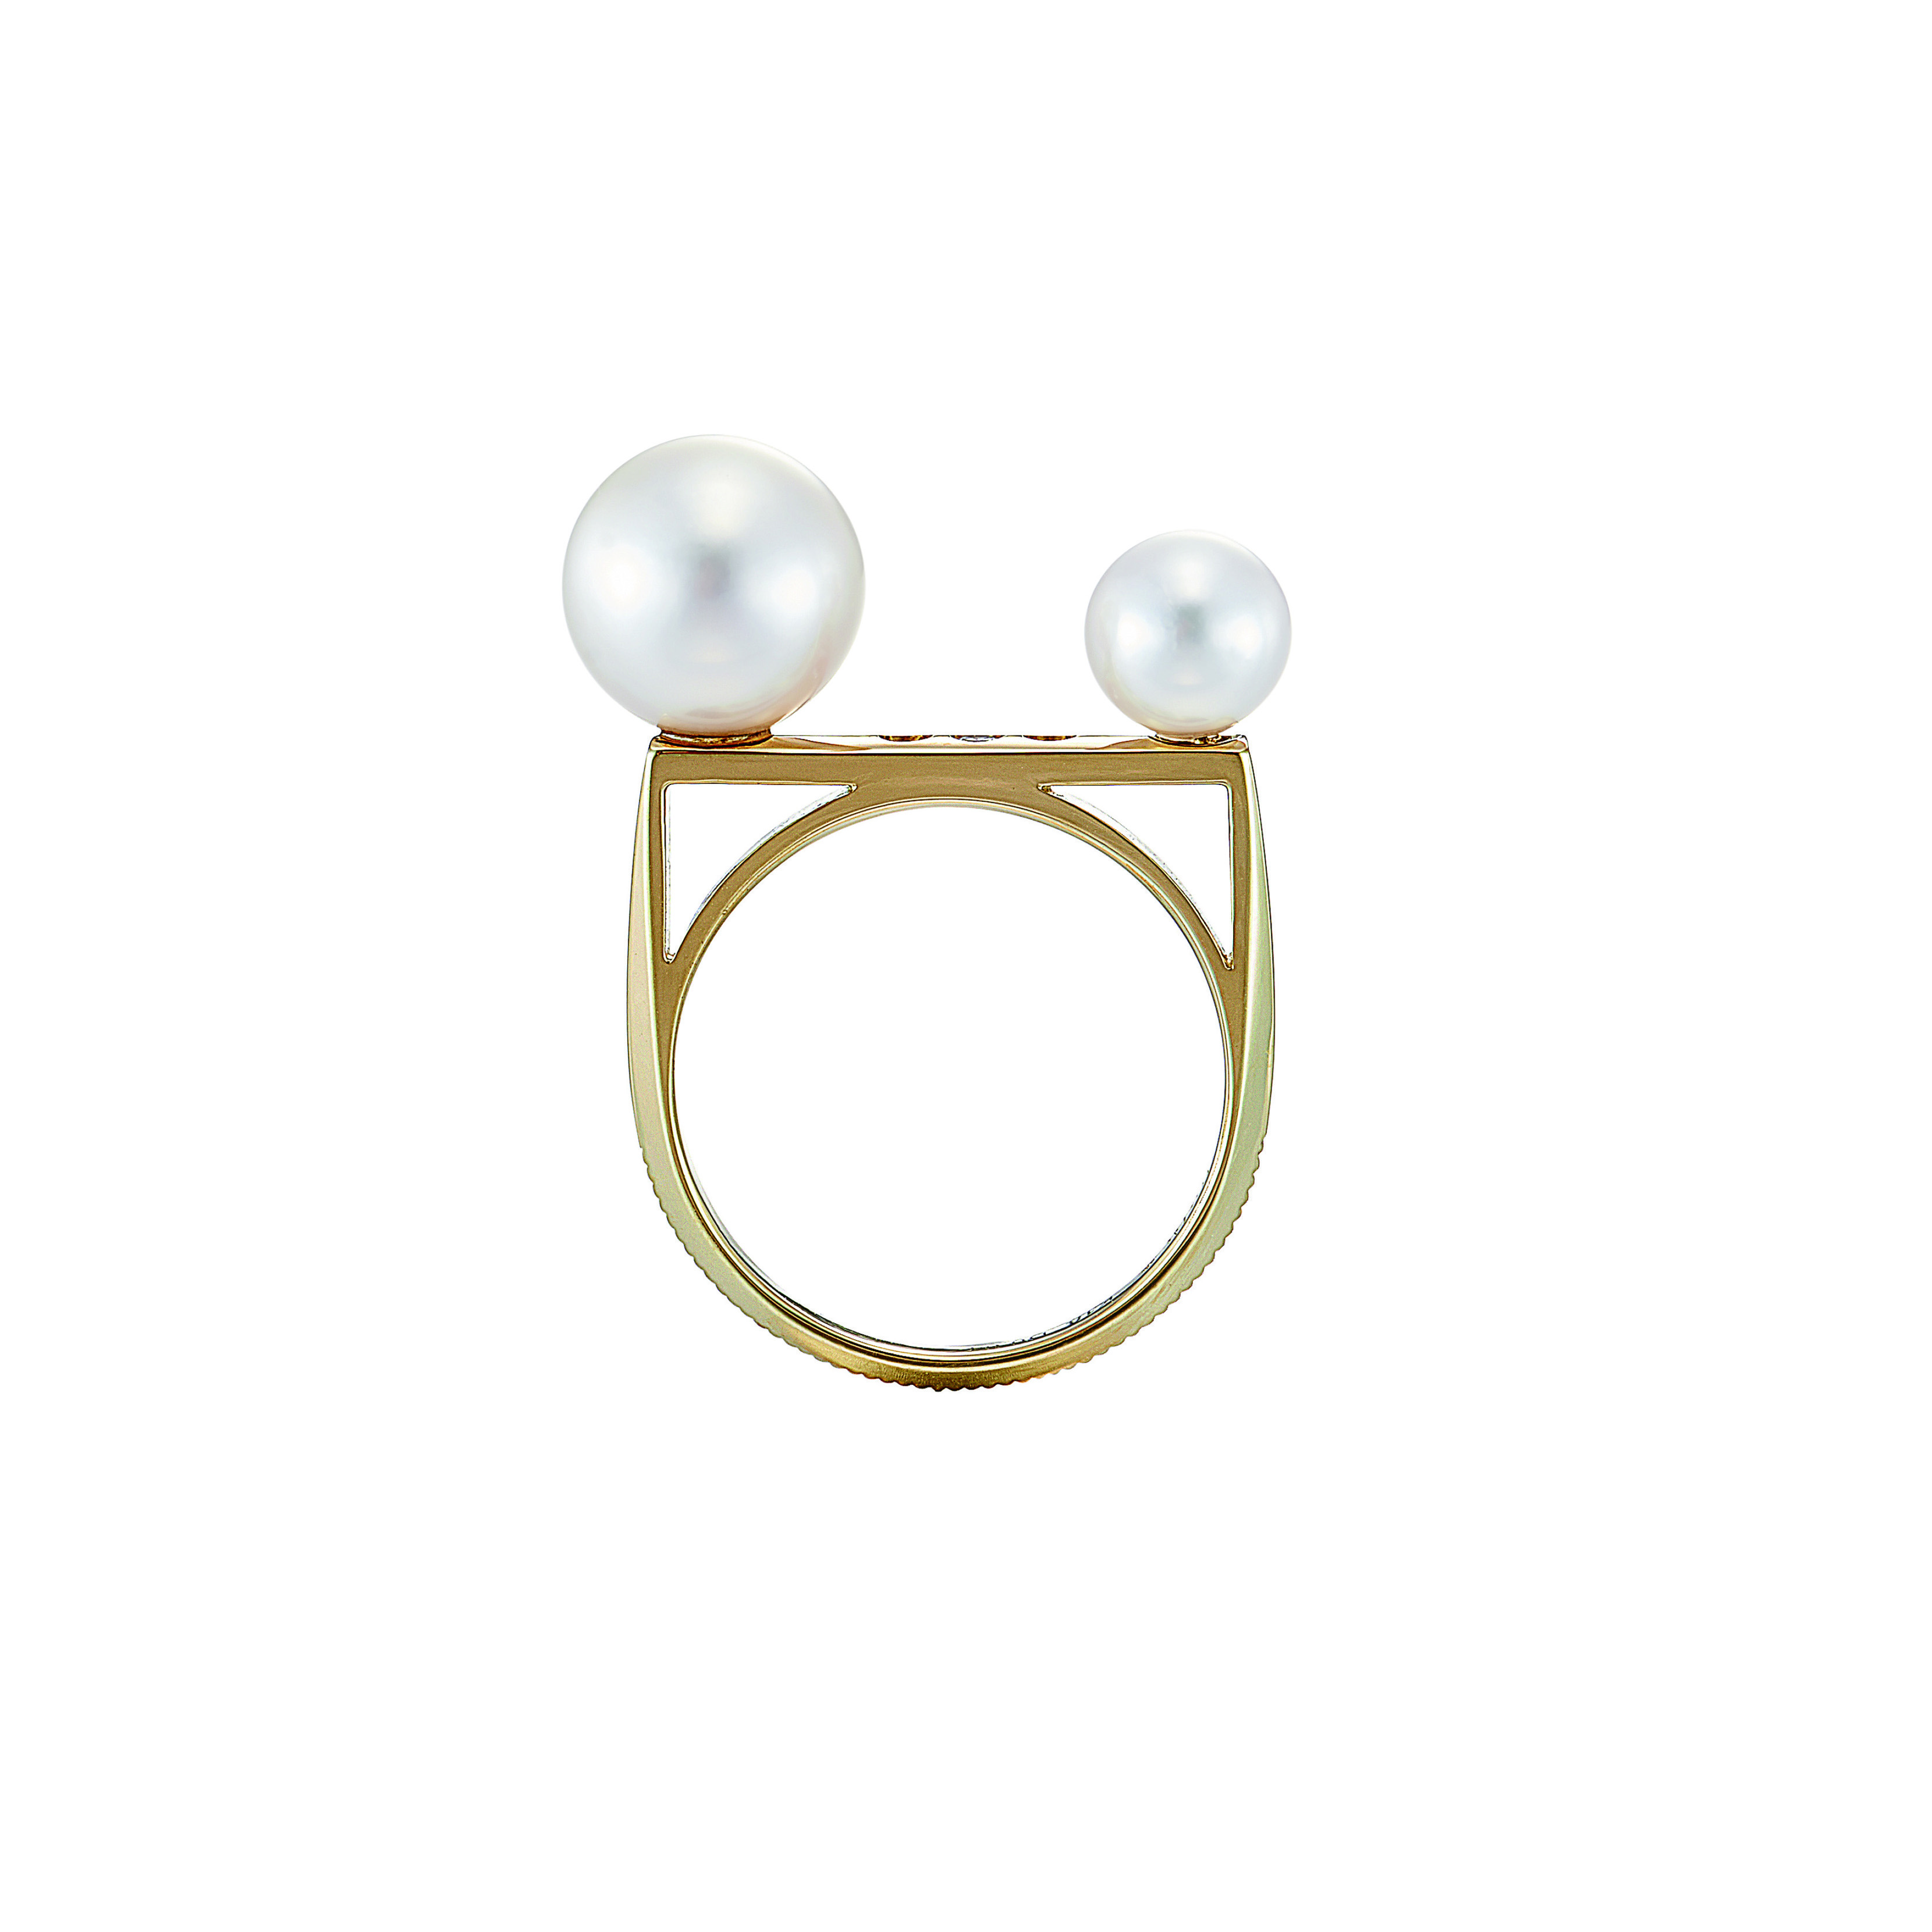 K18 Three Diamonds and Two Pearls Deco Ring